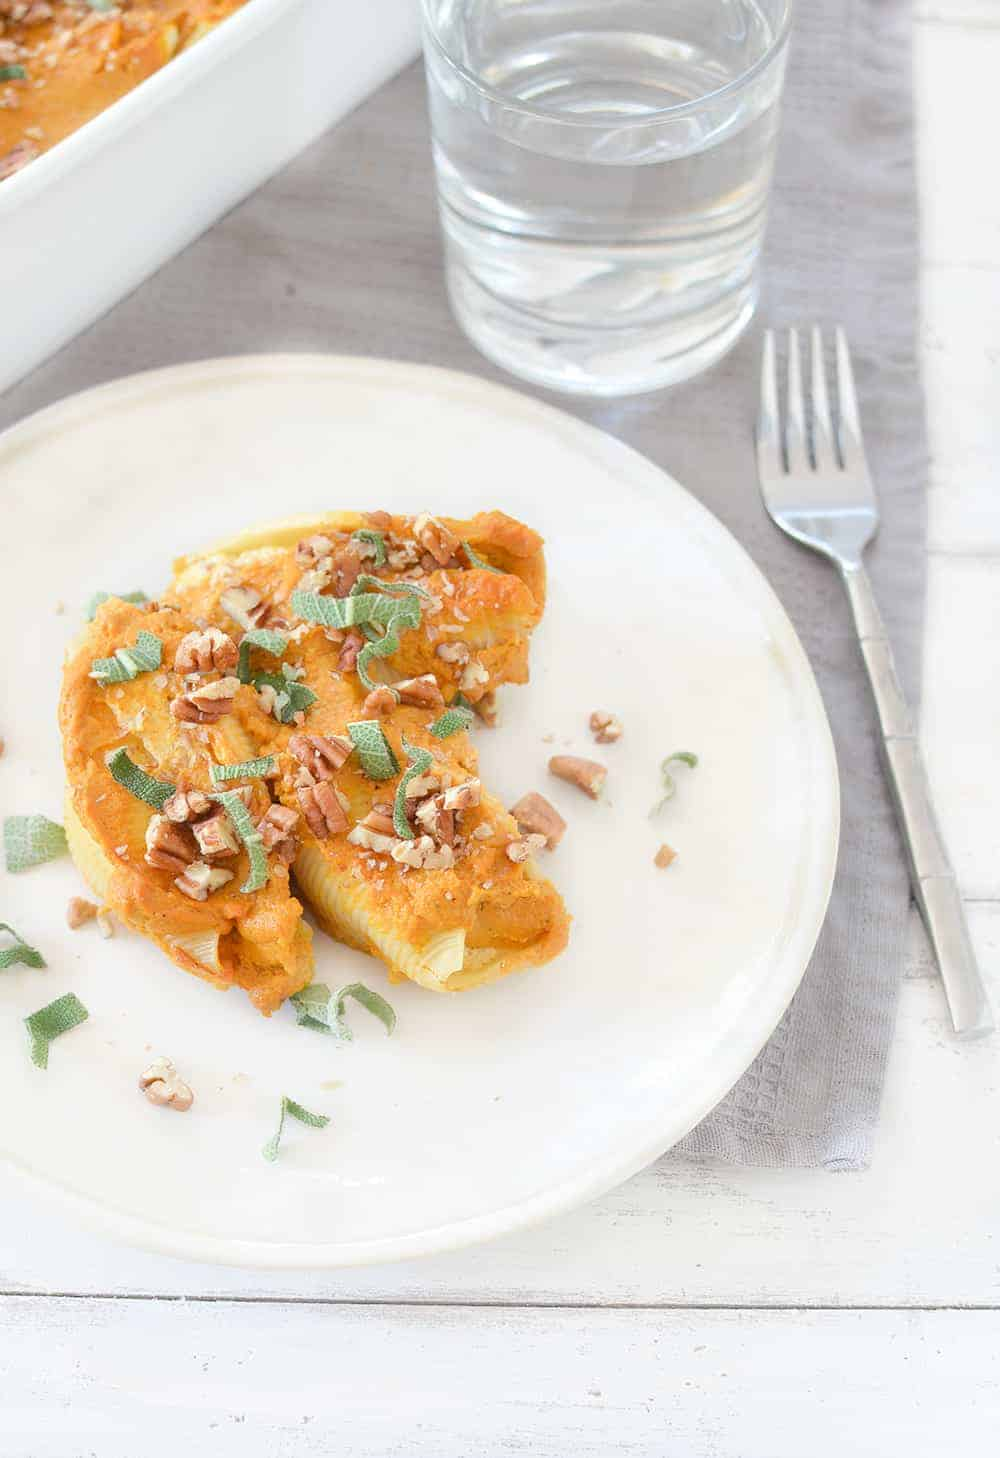 Vegan Stuffed Shells with Pumpkin Cream Sauce! Tofu ricotta stuffed into jumbo shells and baked in a creamy pumpkin sauce. Showstopper dinner for the holidays!   www.delishknowledge.com